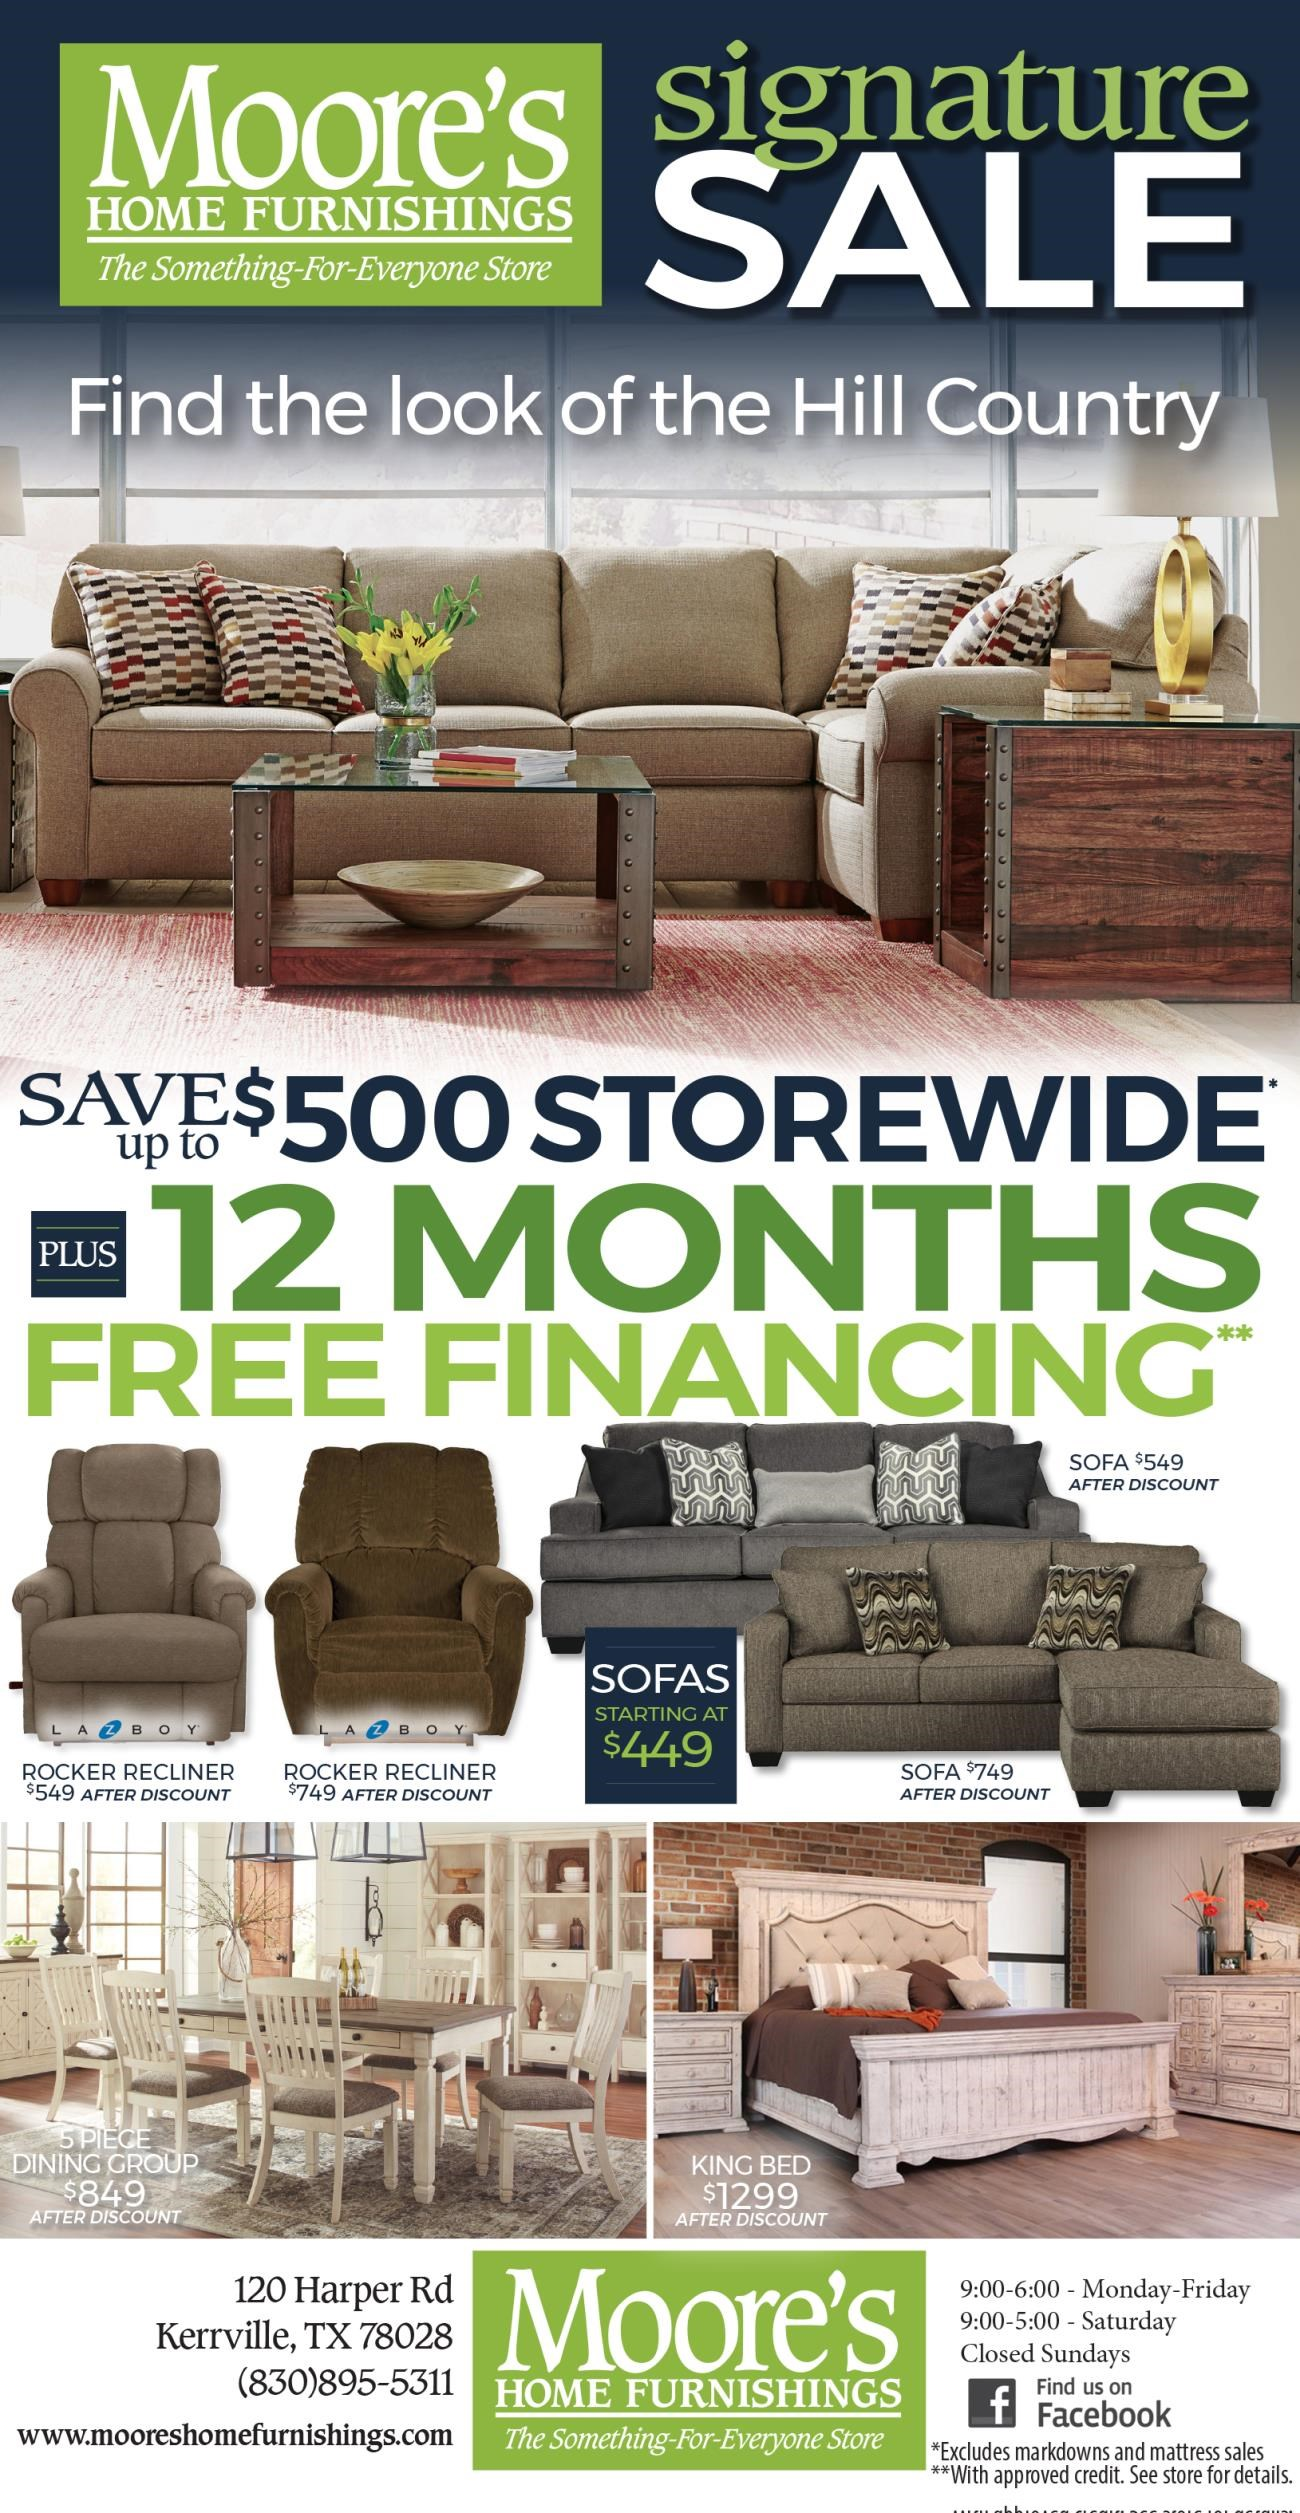 Save up to $500 Storewide Plus 12 Months Free Financing